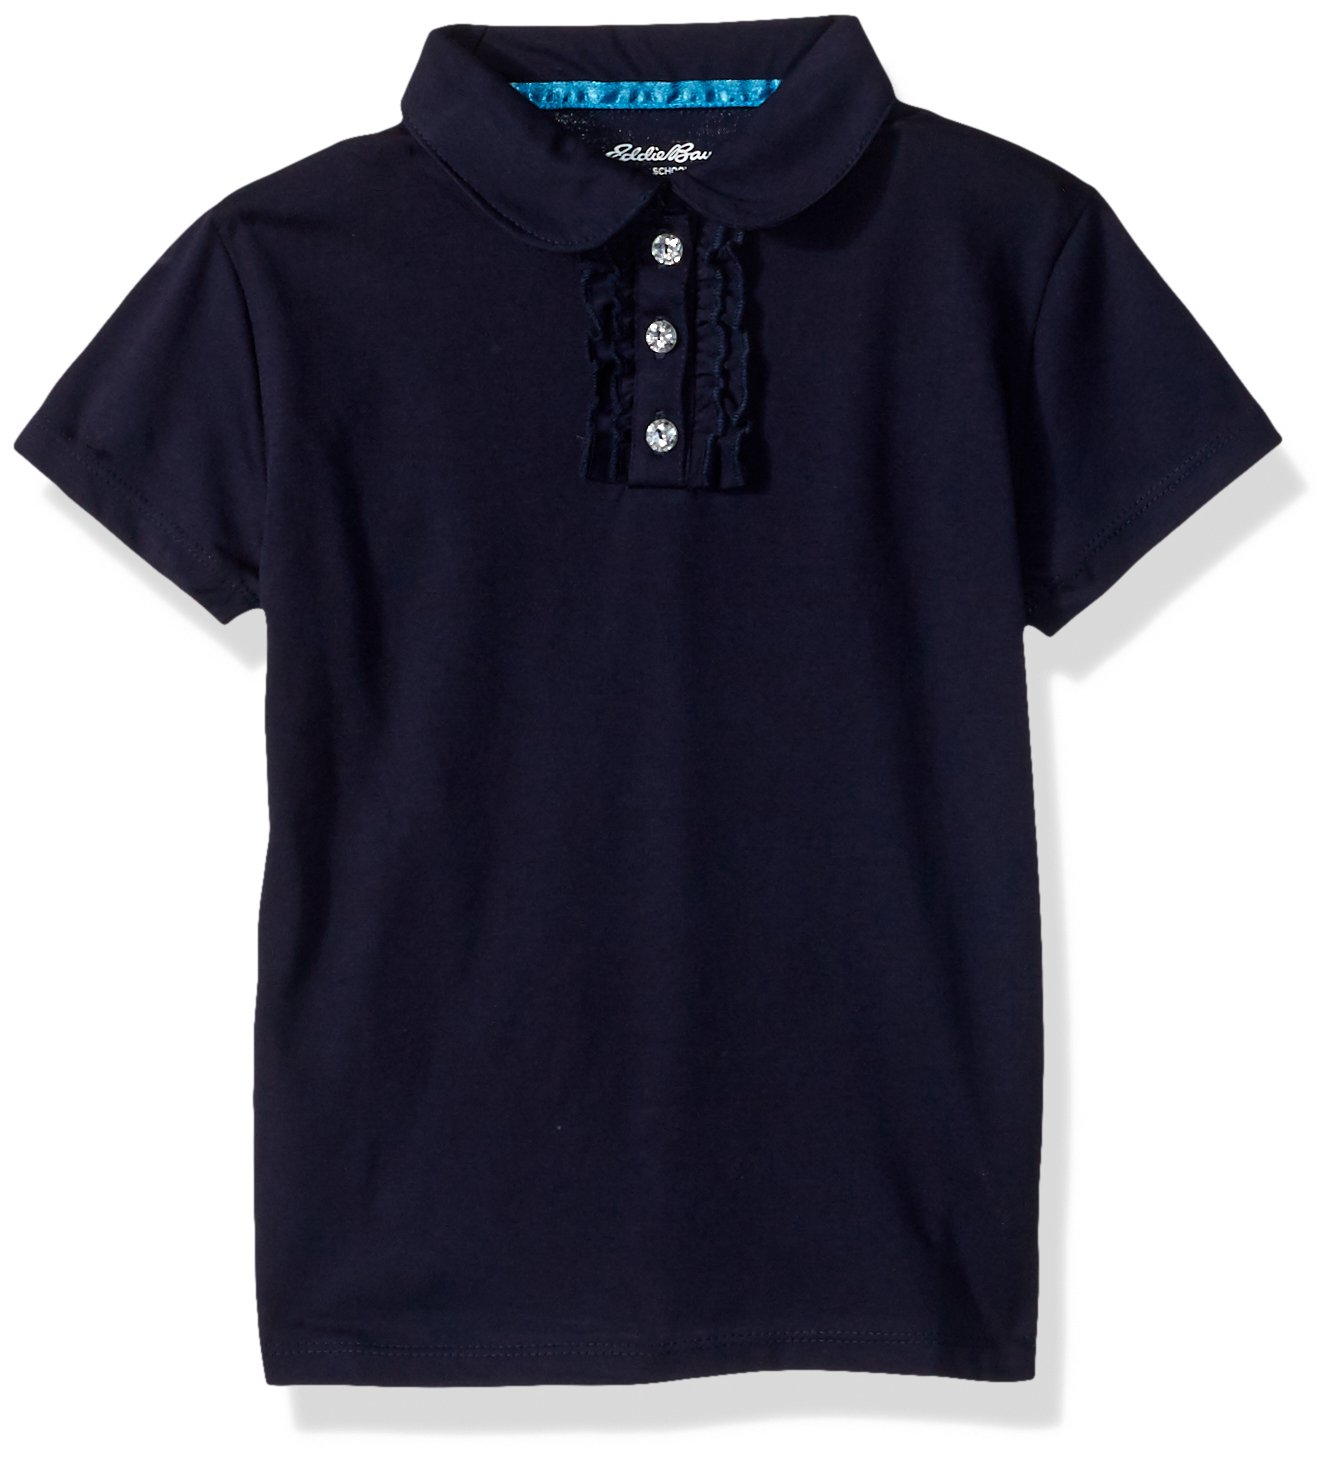 Eddie Bauer Girls' Polo Shirt (More Styles Available), Simple Navy, 4